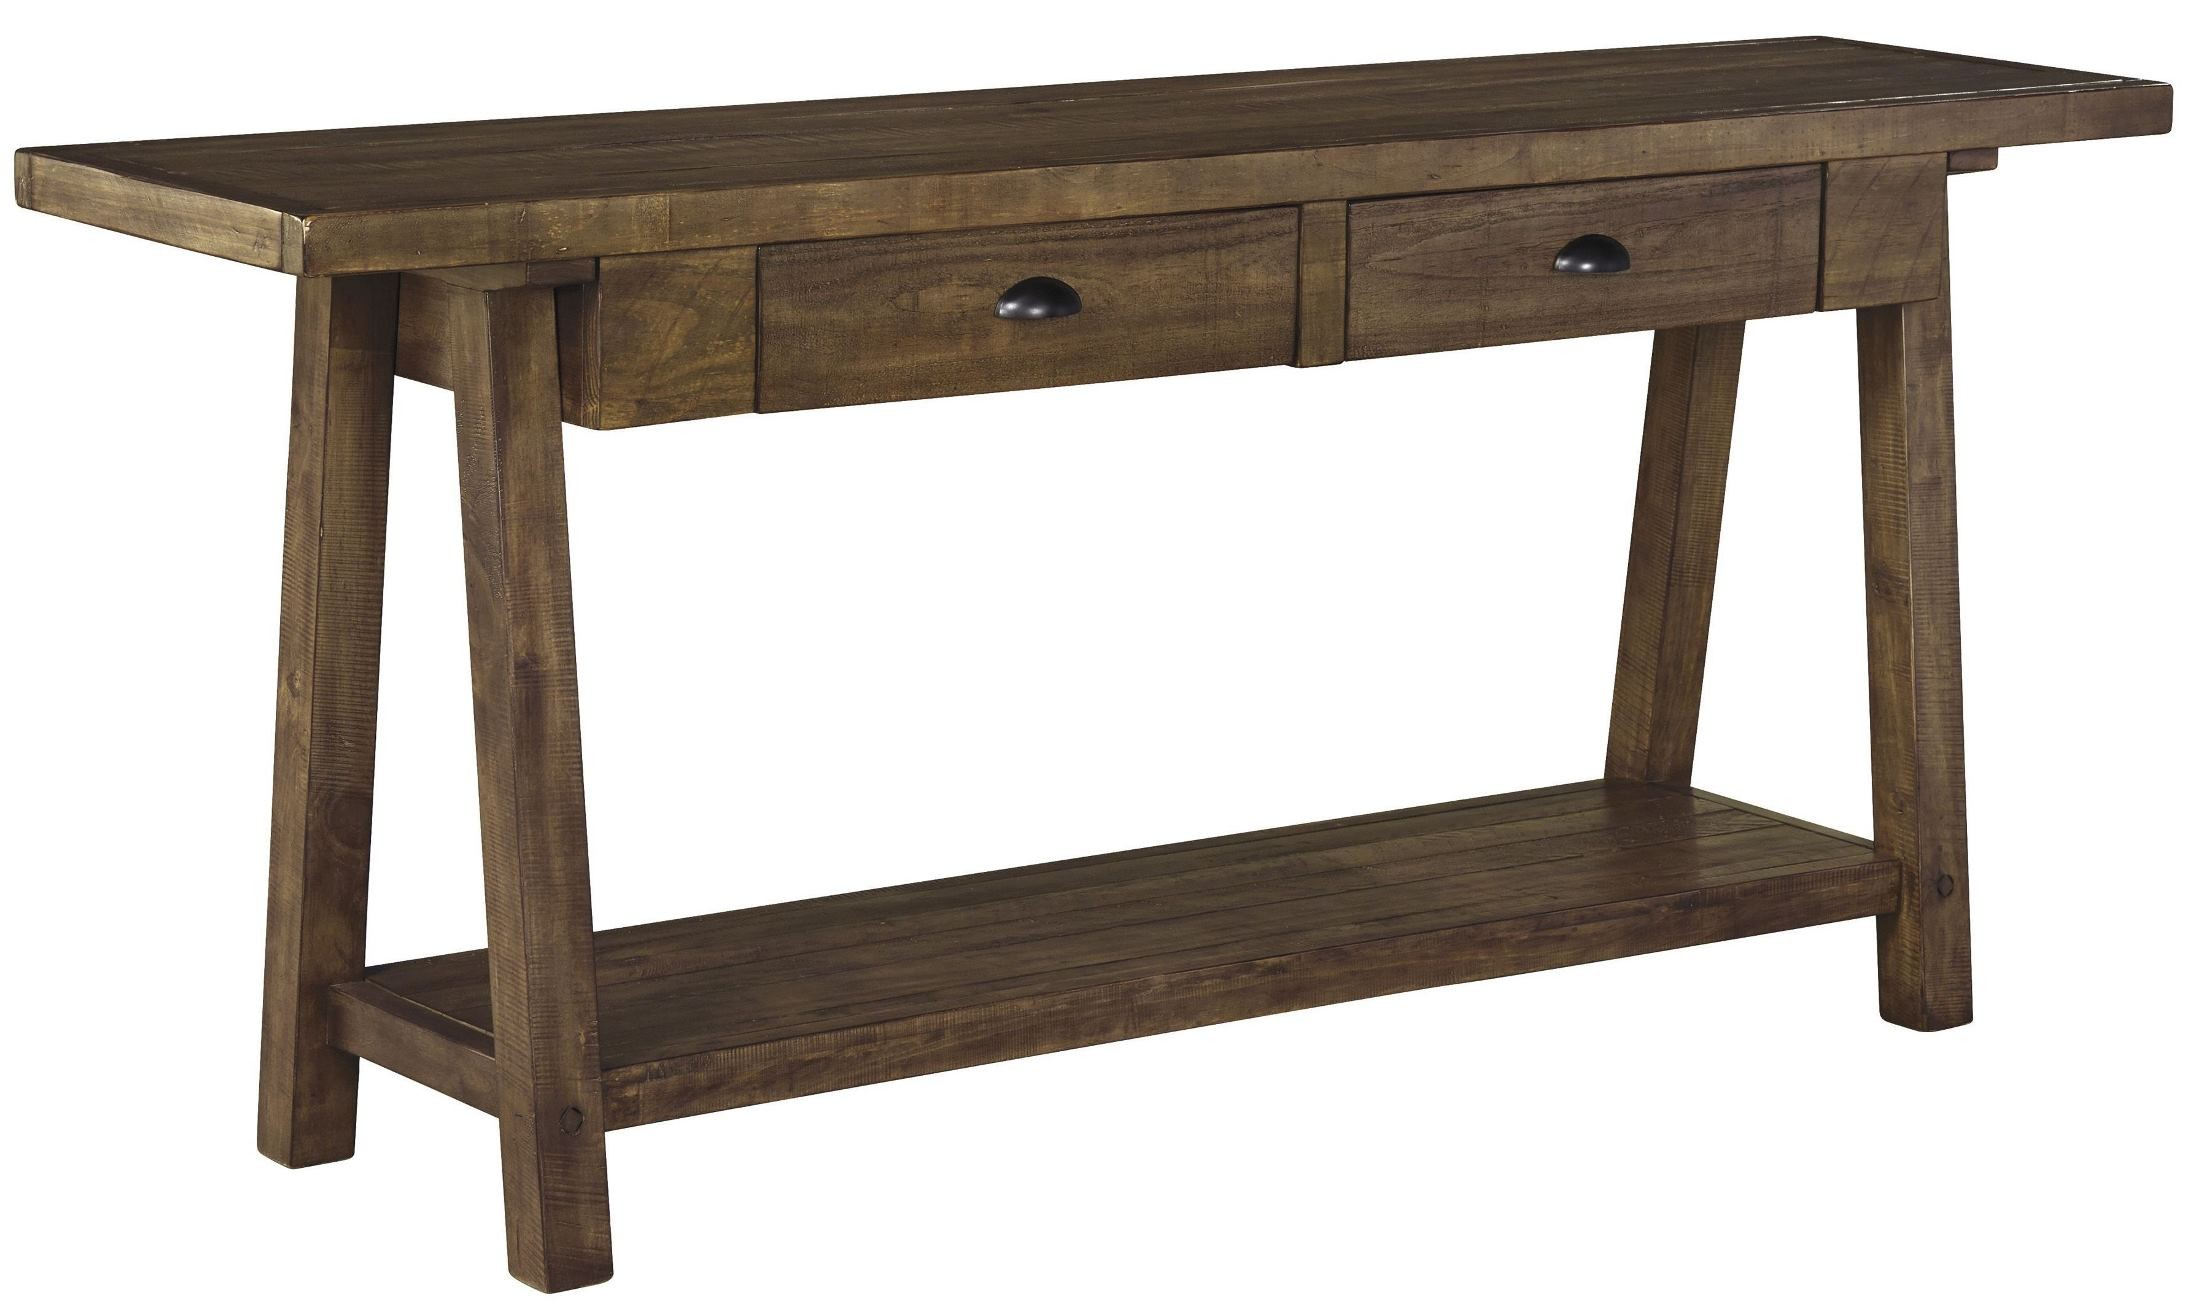 Dondie rustic brown sofa table from ashley coleman furniture for 5 sofa table